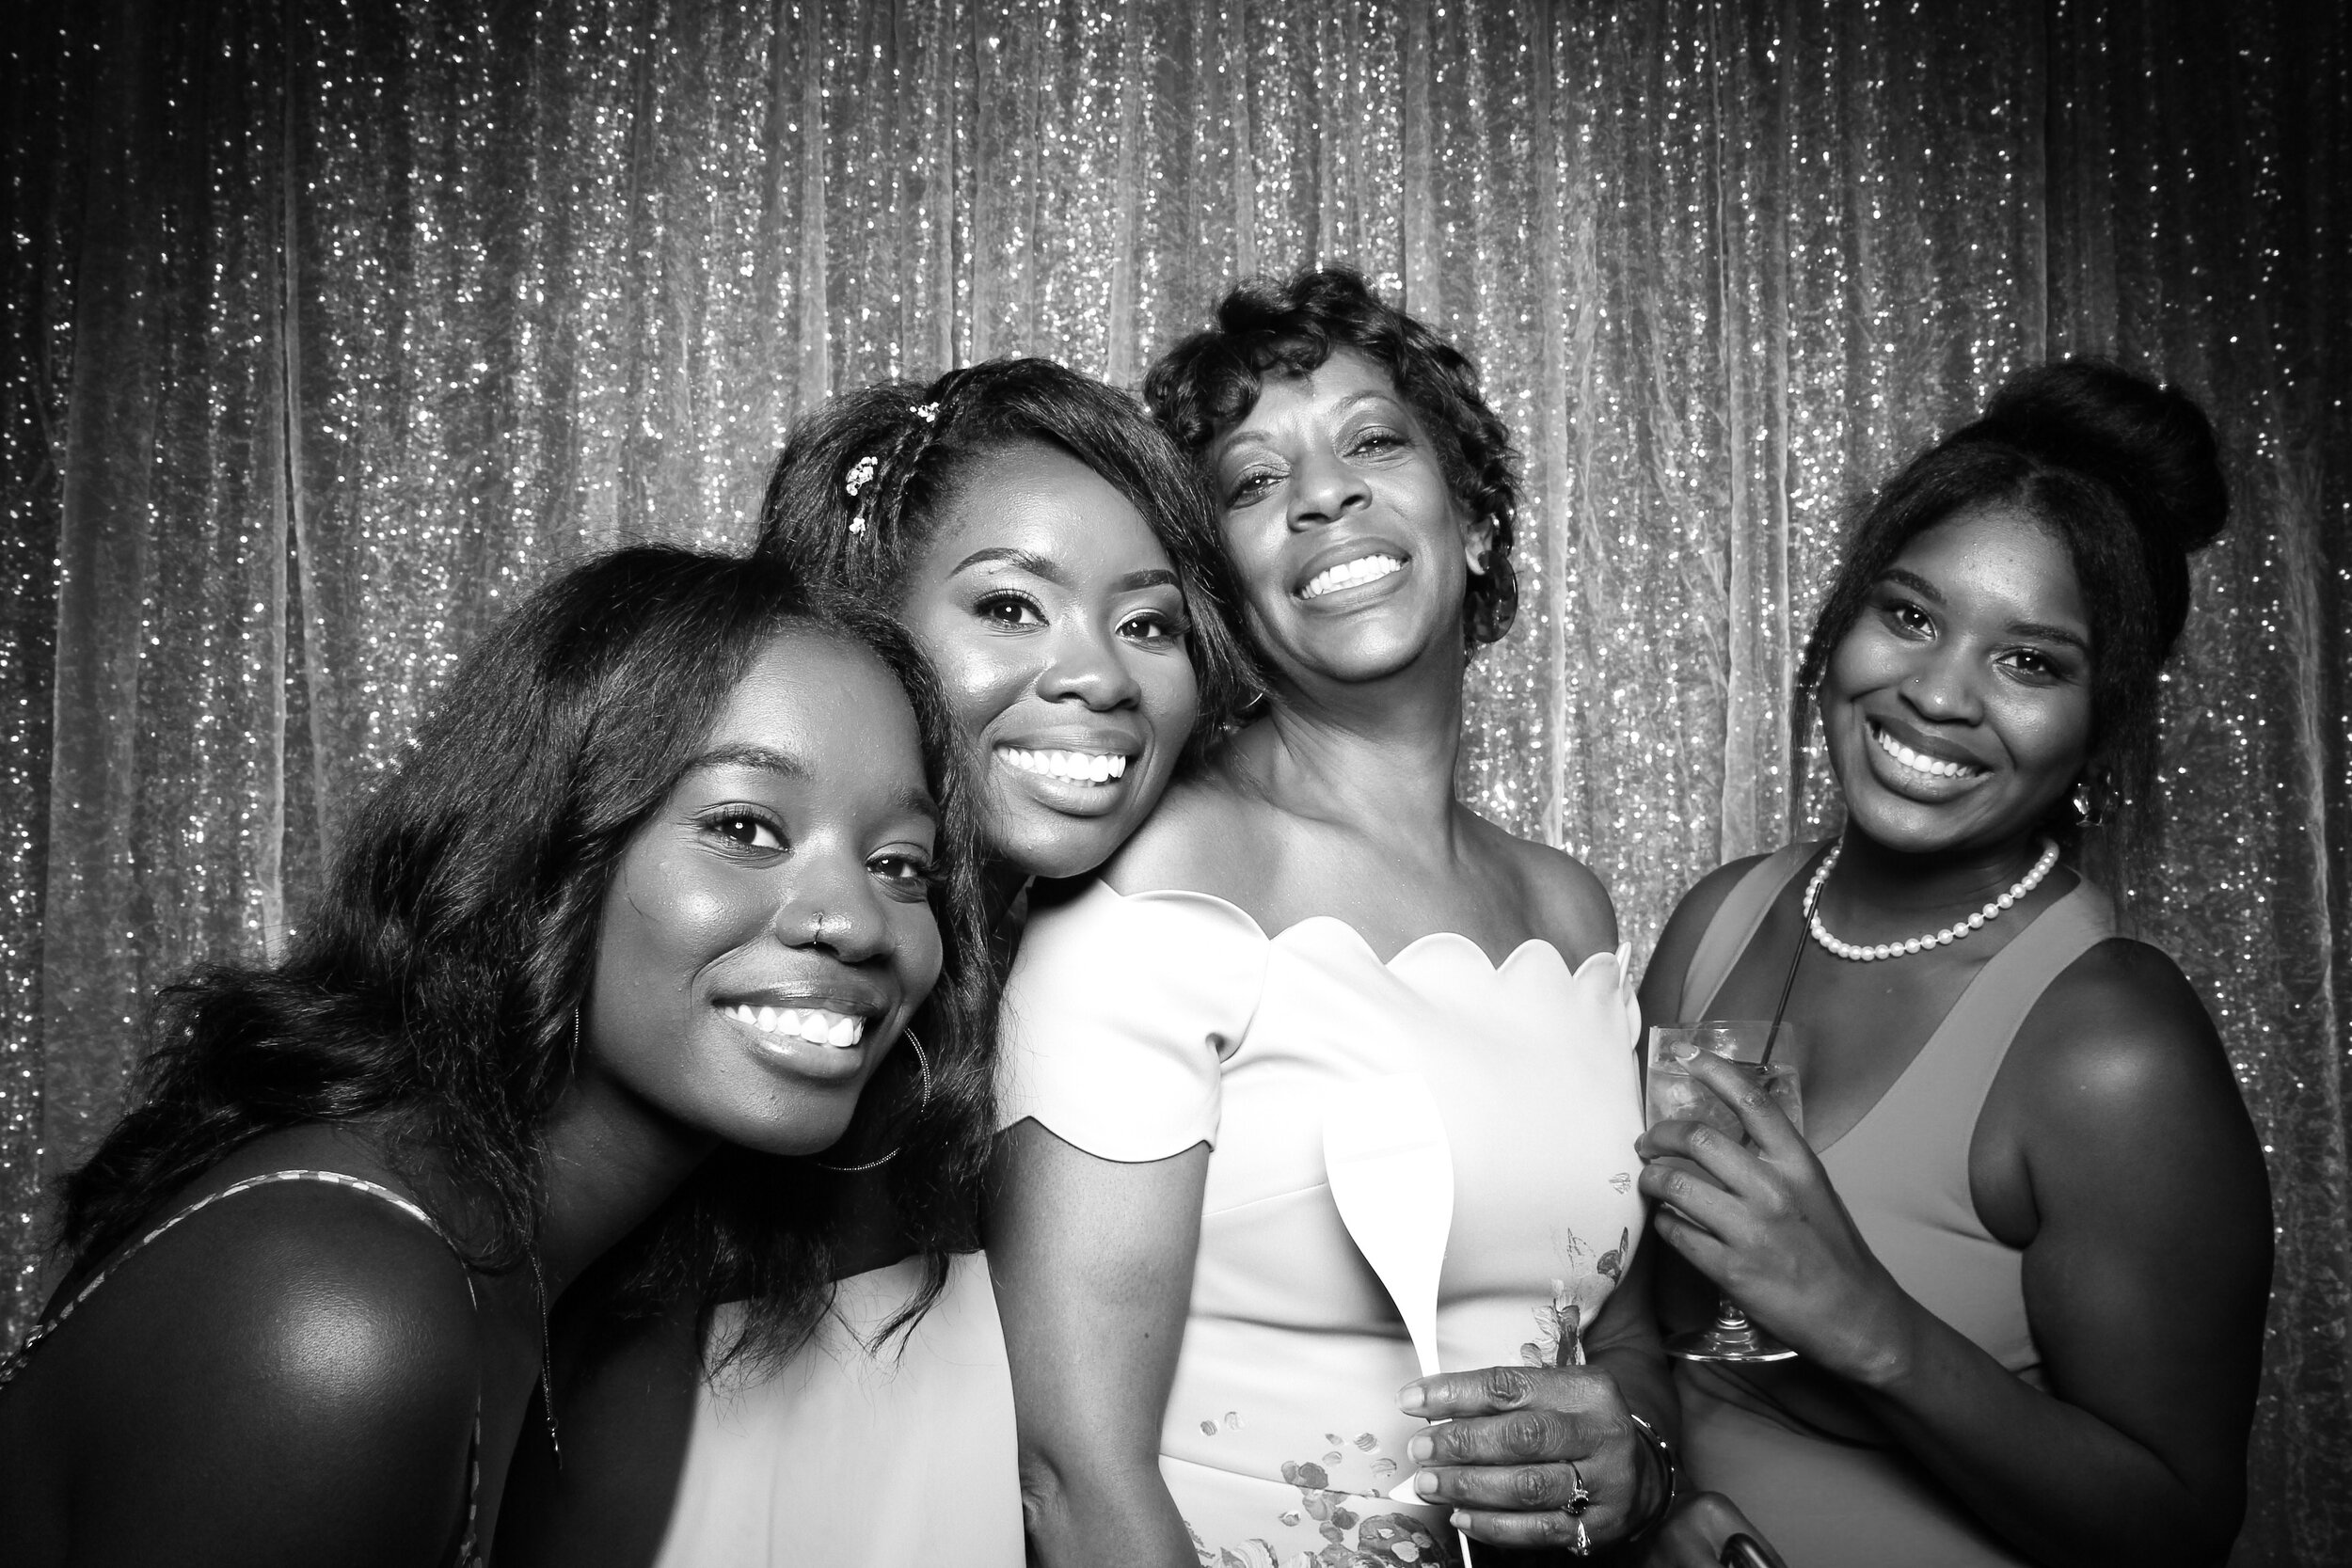 Ravisloe_Country_Club_Wedding_Photo_Booth_11.jpg